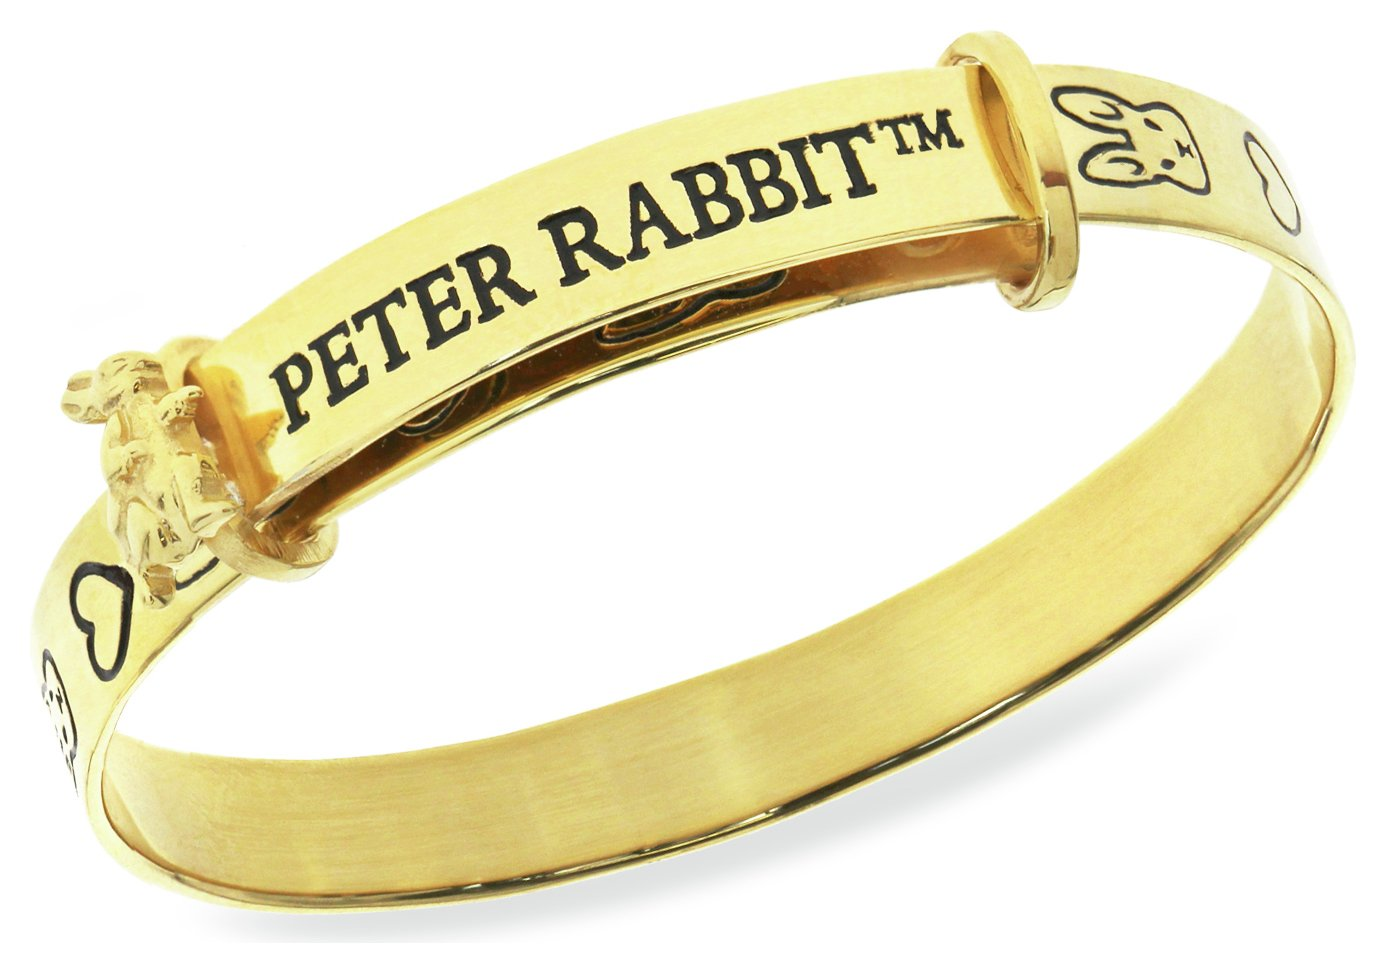 Image of Beatrix Potter Gold Plated Peter Rabbit Expander Bangle